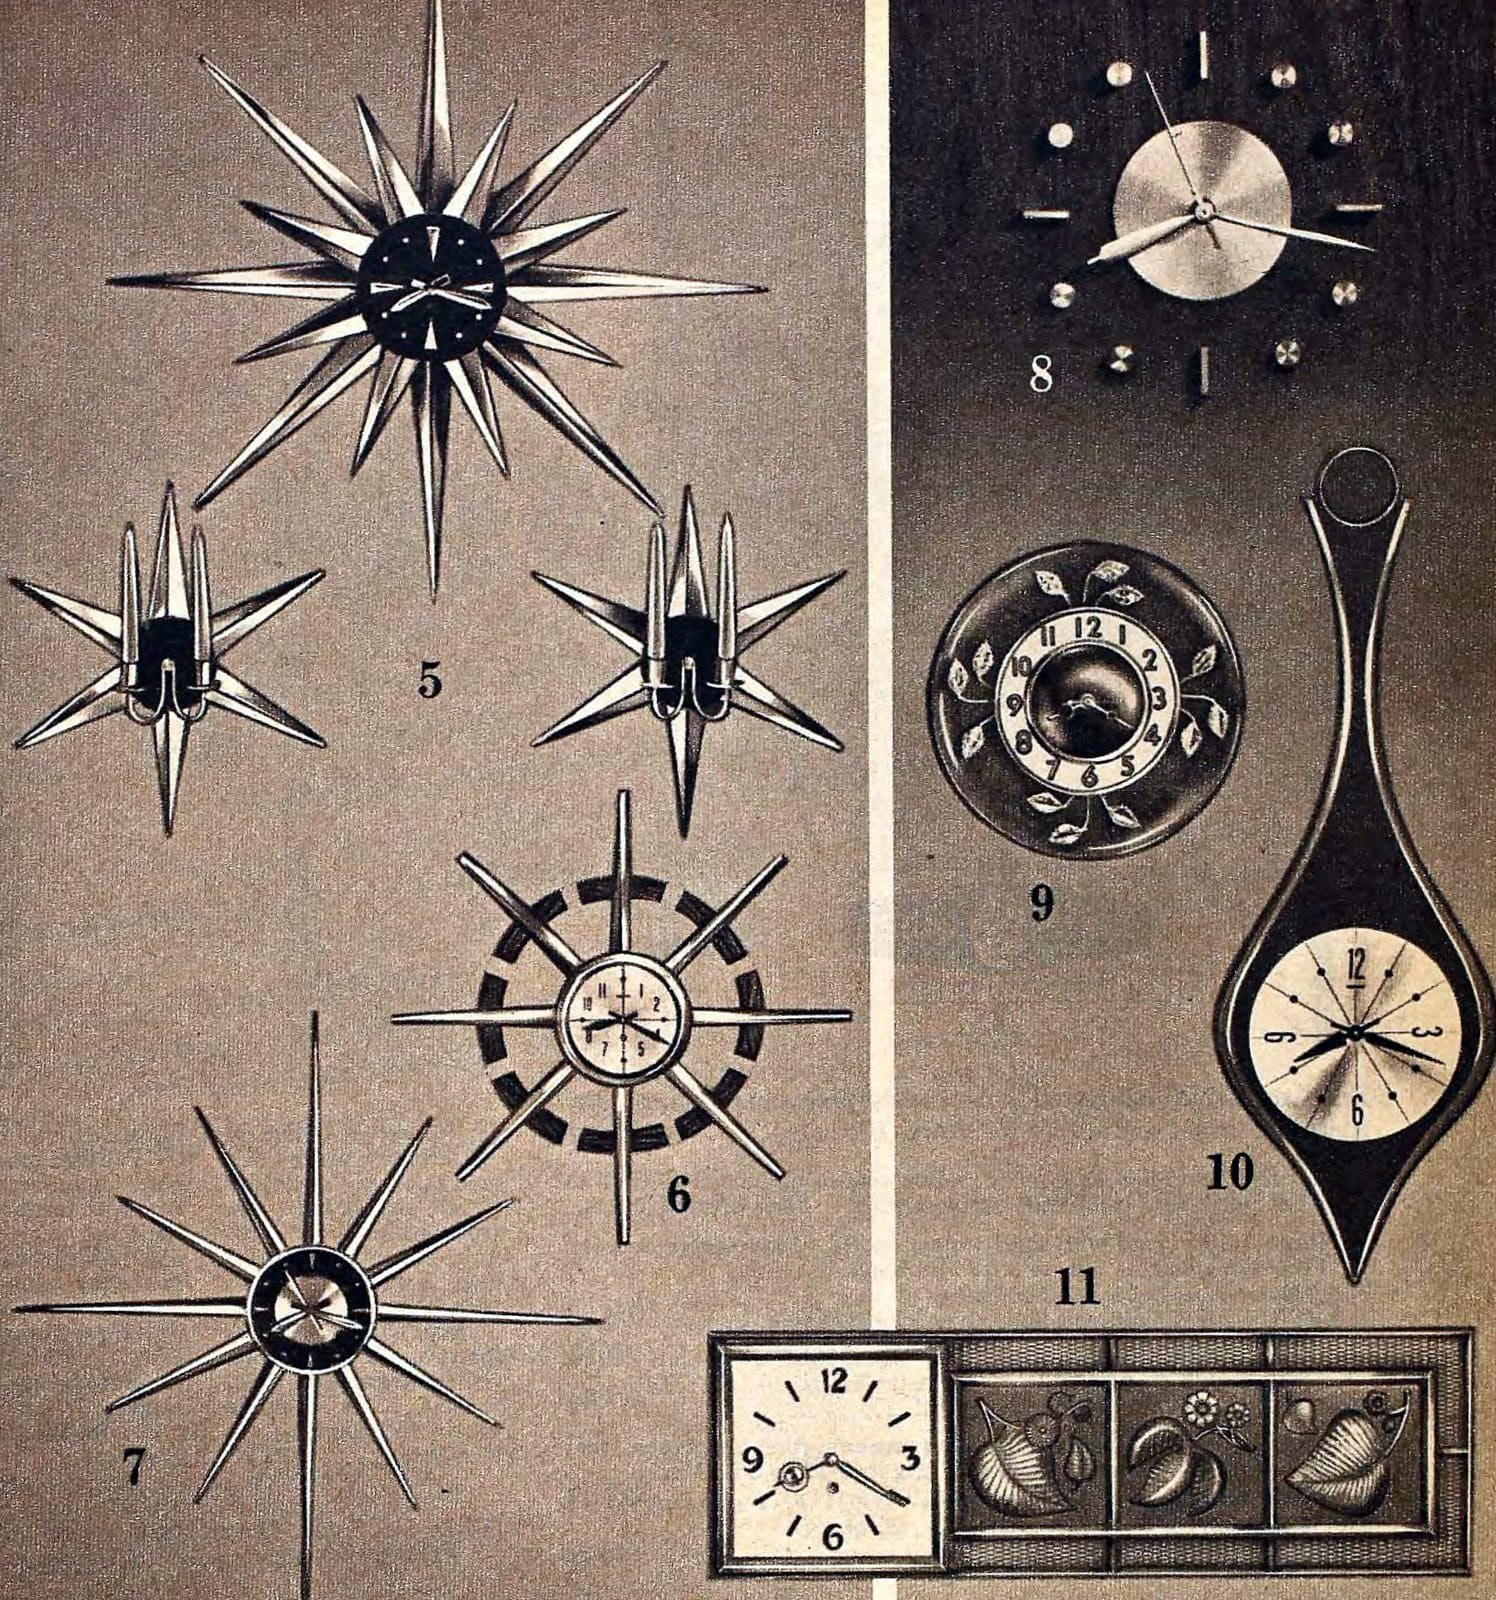 Retro mod star time and modern time wall clocks (1963)